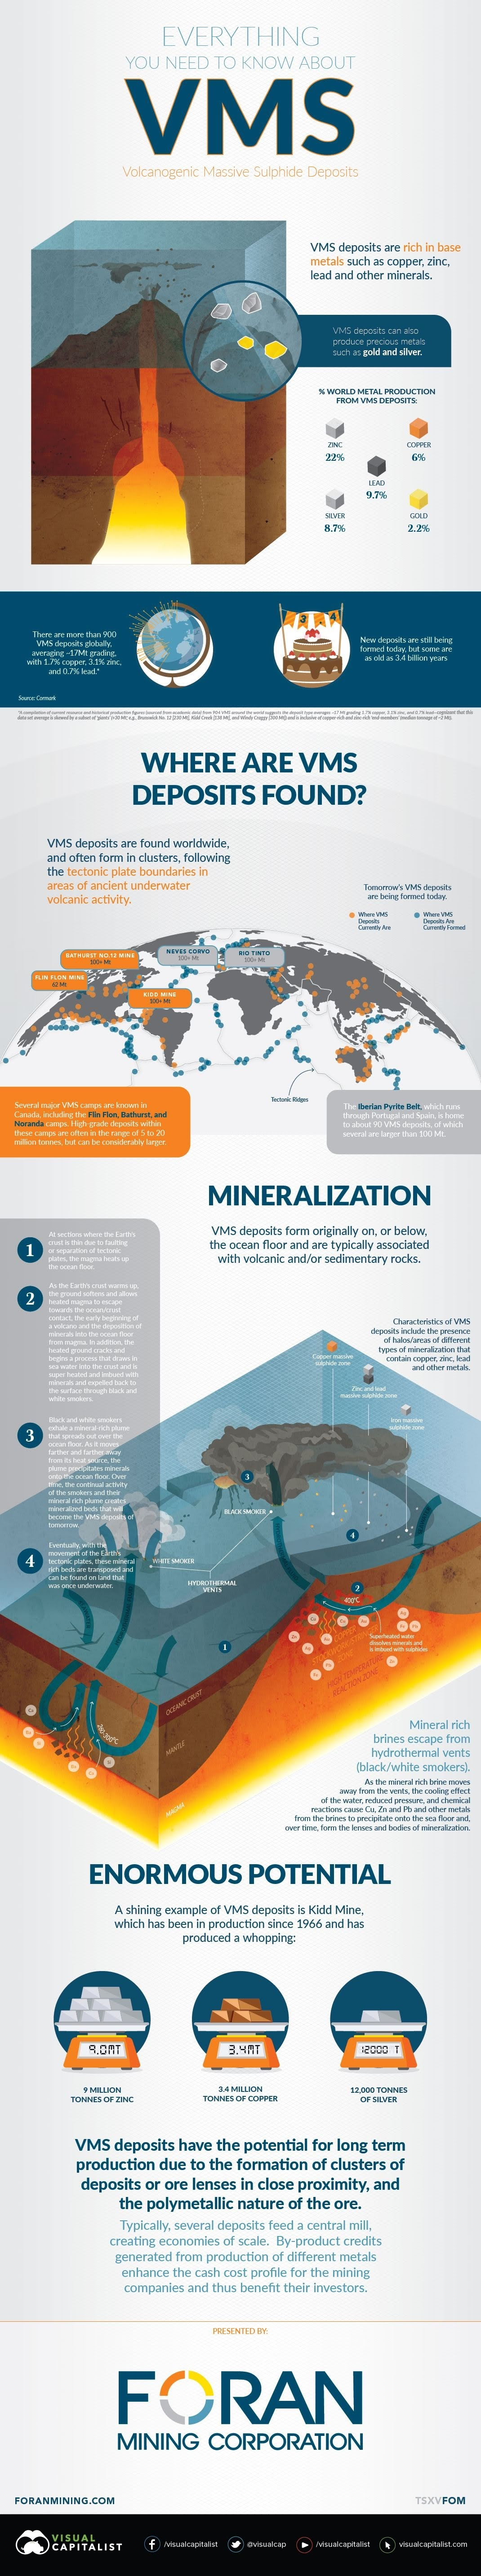 Everything You Need to Know on VMS Deposits #infographic